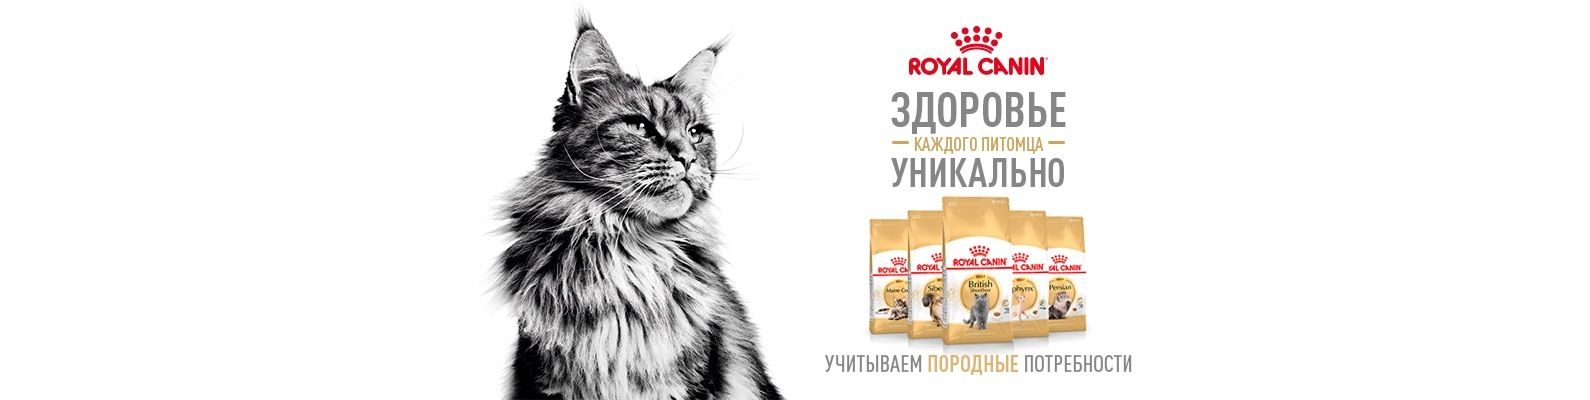 Консервы Роял Канин (Royal Canin) для кошек